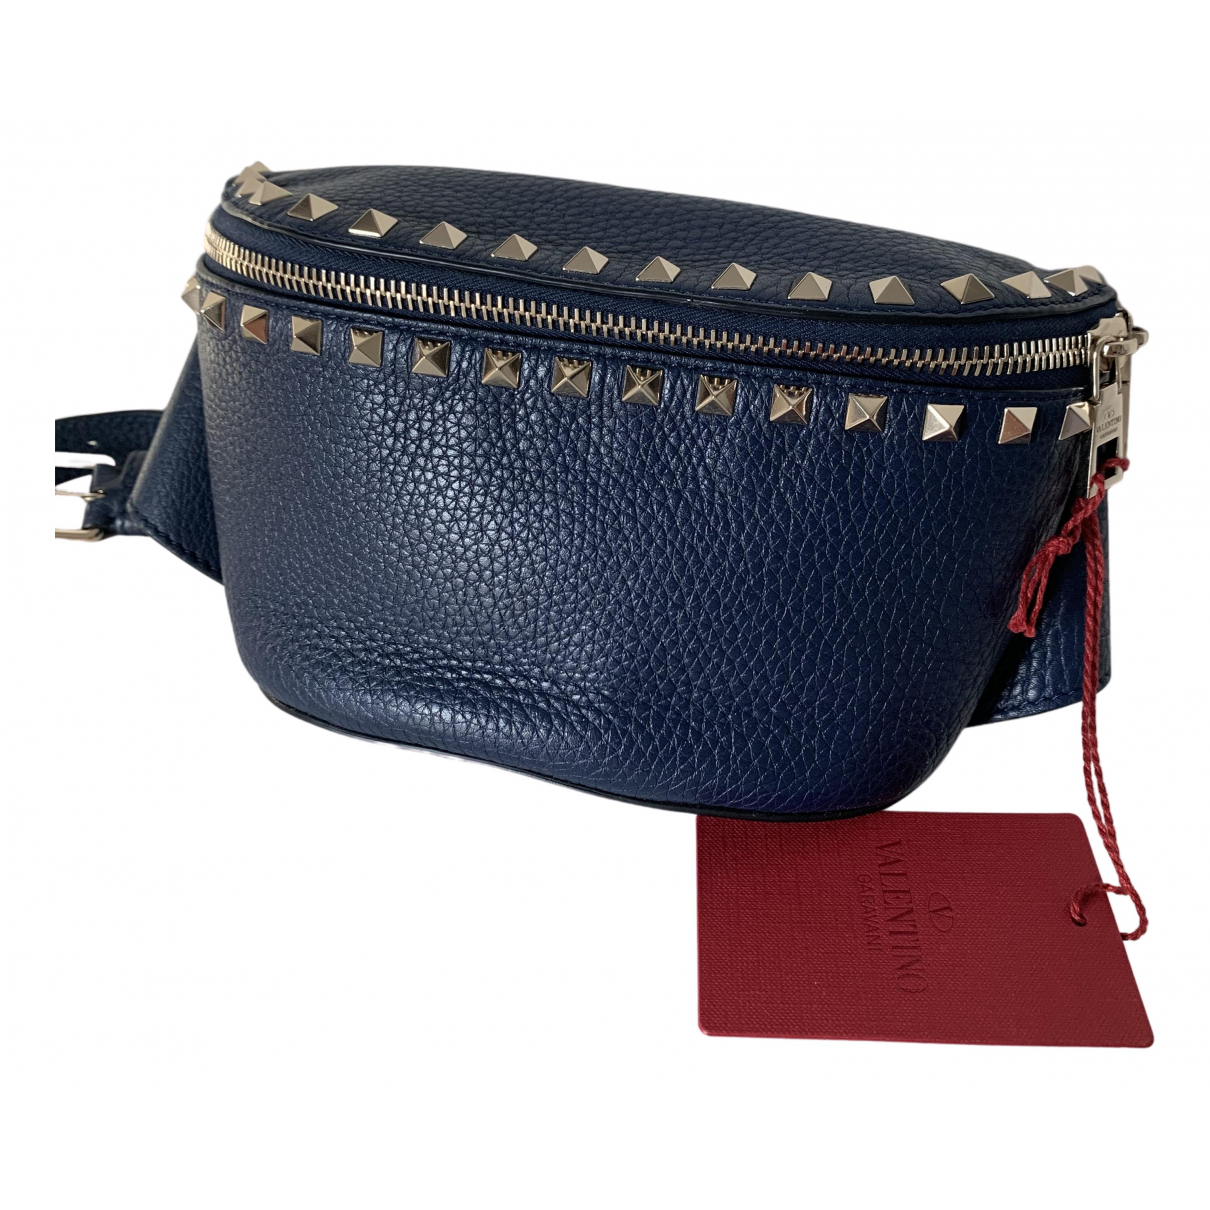 Valentino Garavani Rockstud Navy Leather Clutch bag for Women N